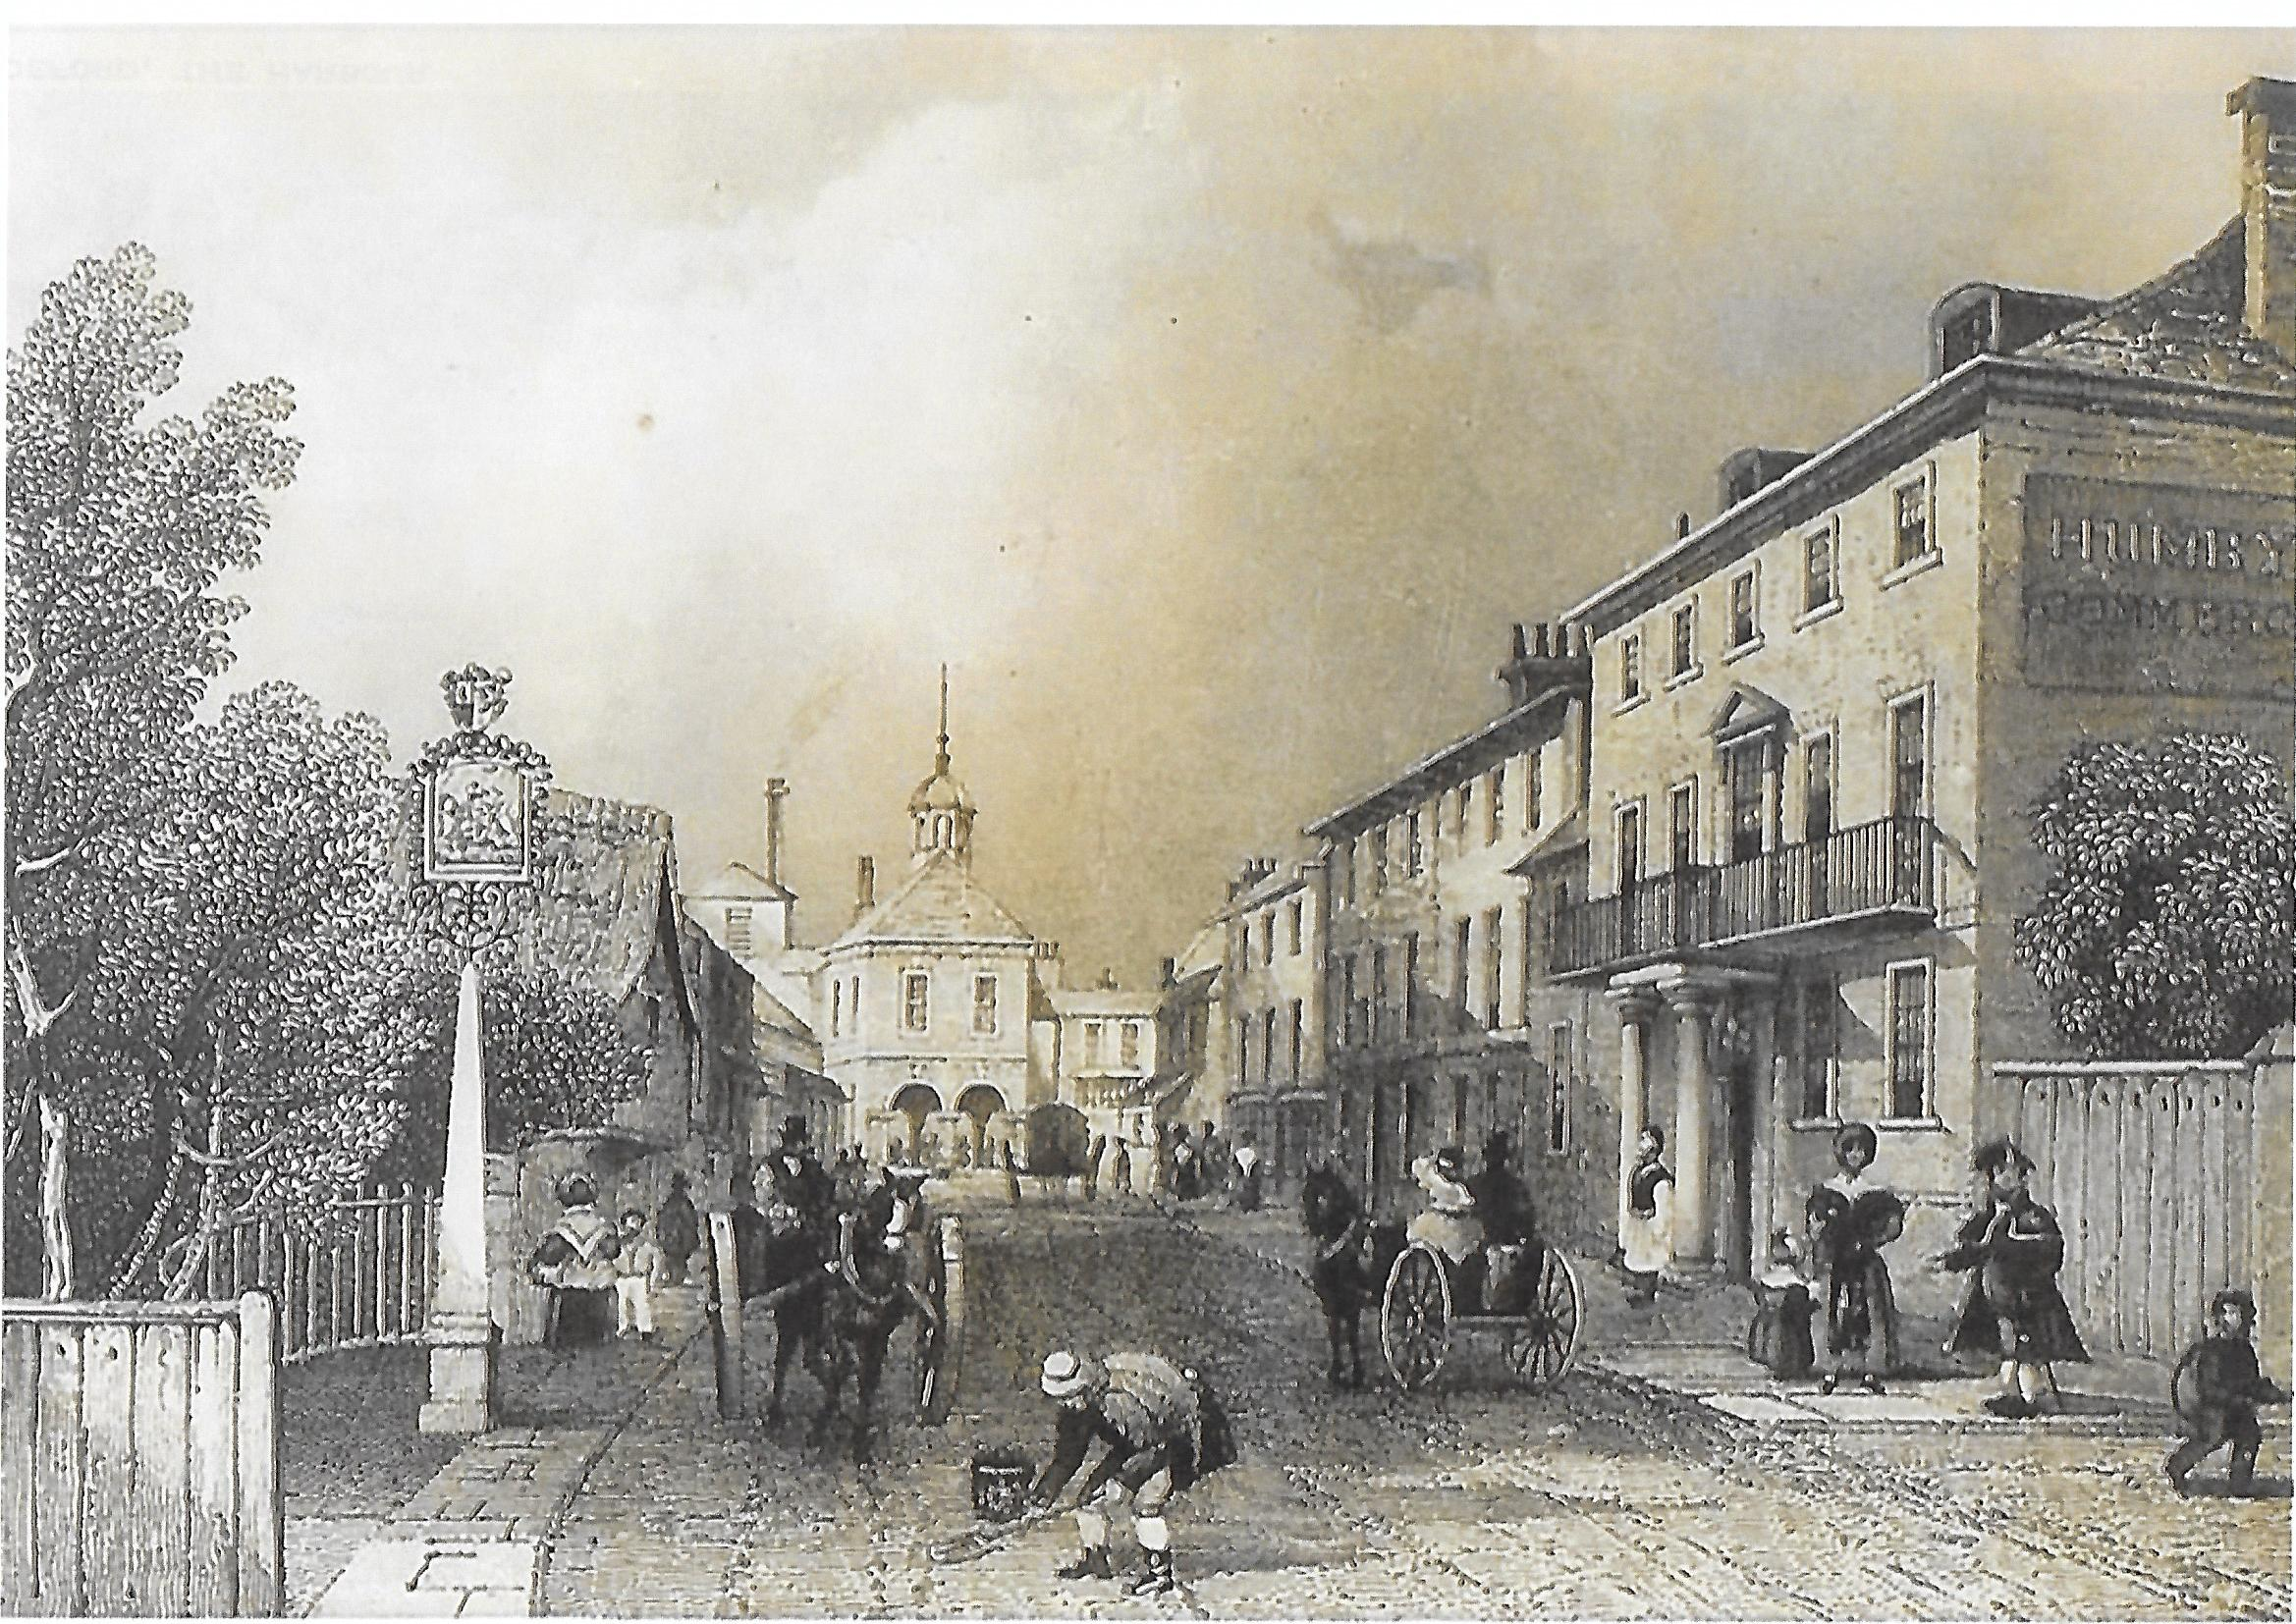 Castle Street Christchurch, Dorset 1855